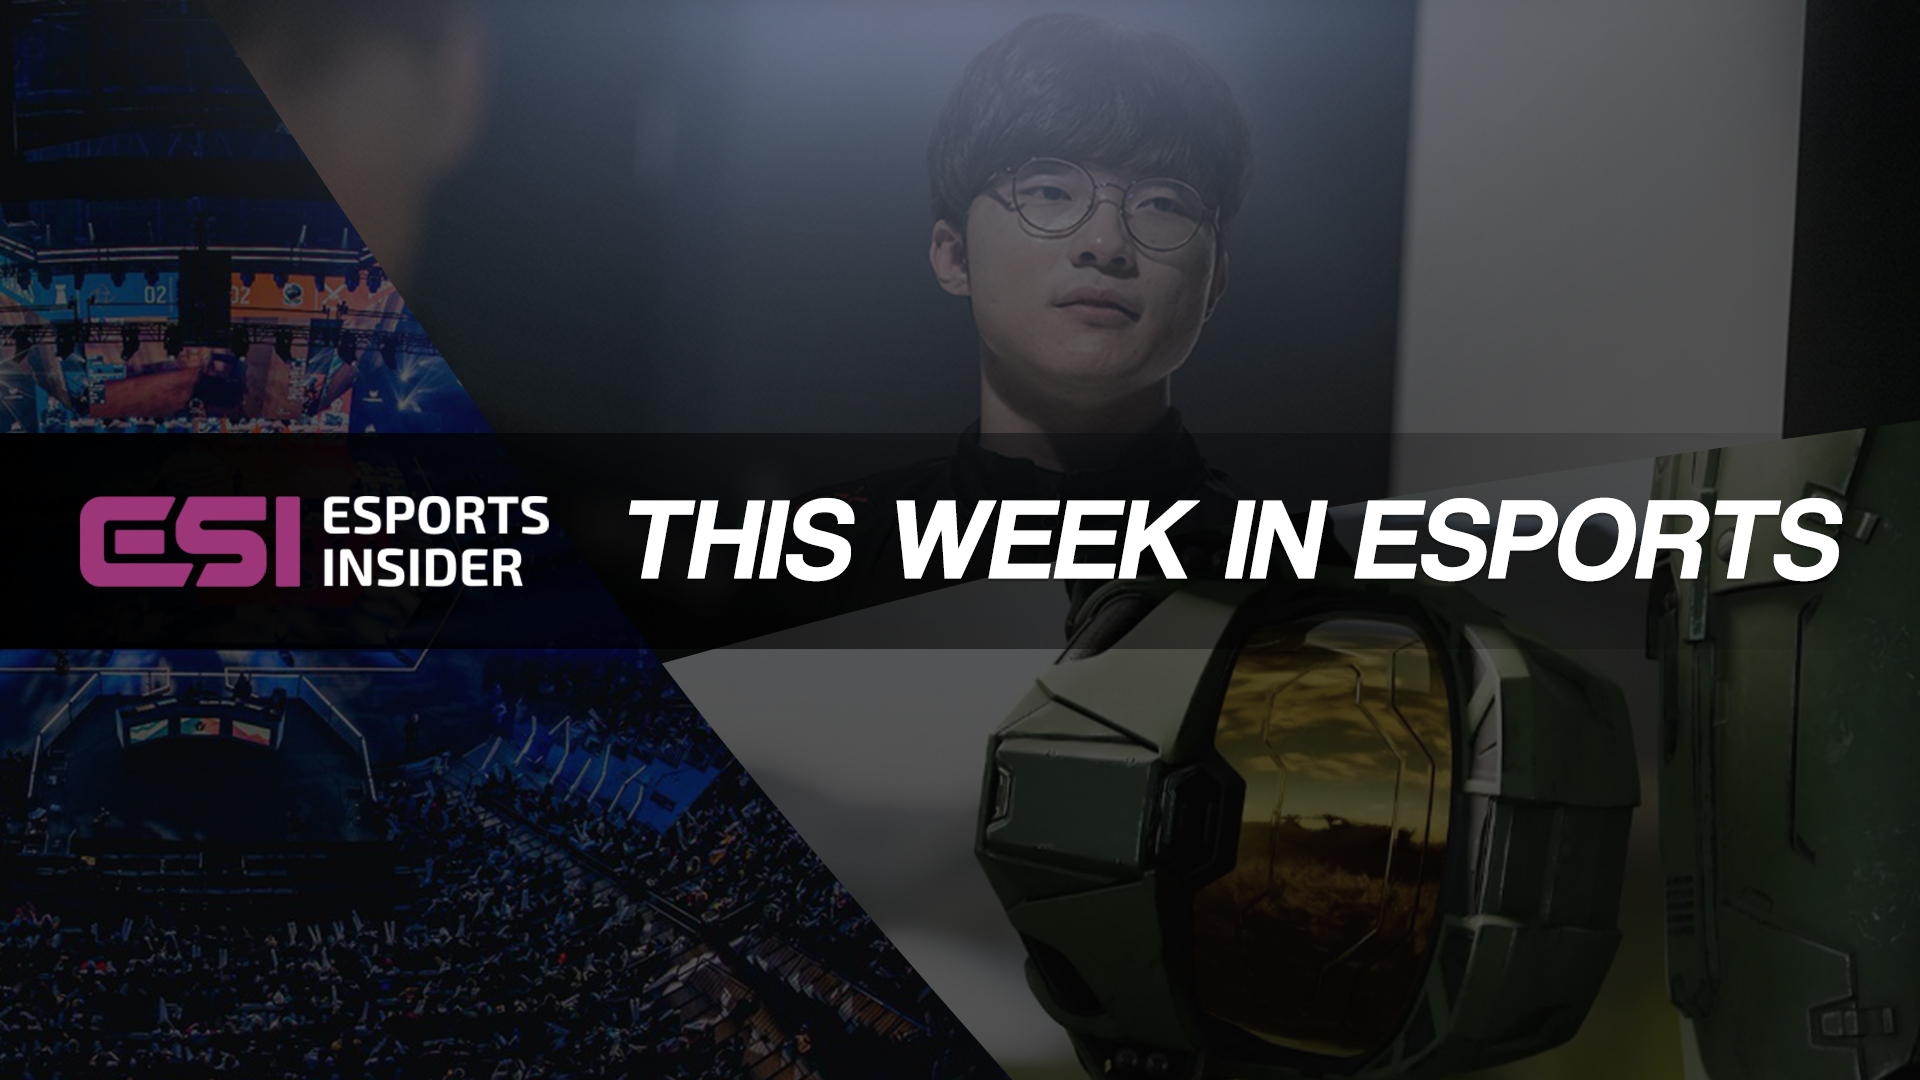 This week in esports: Faker, Halo, Marvel, Rainbow Six Siege - Esports Insider